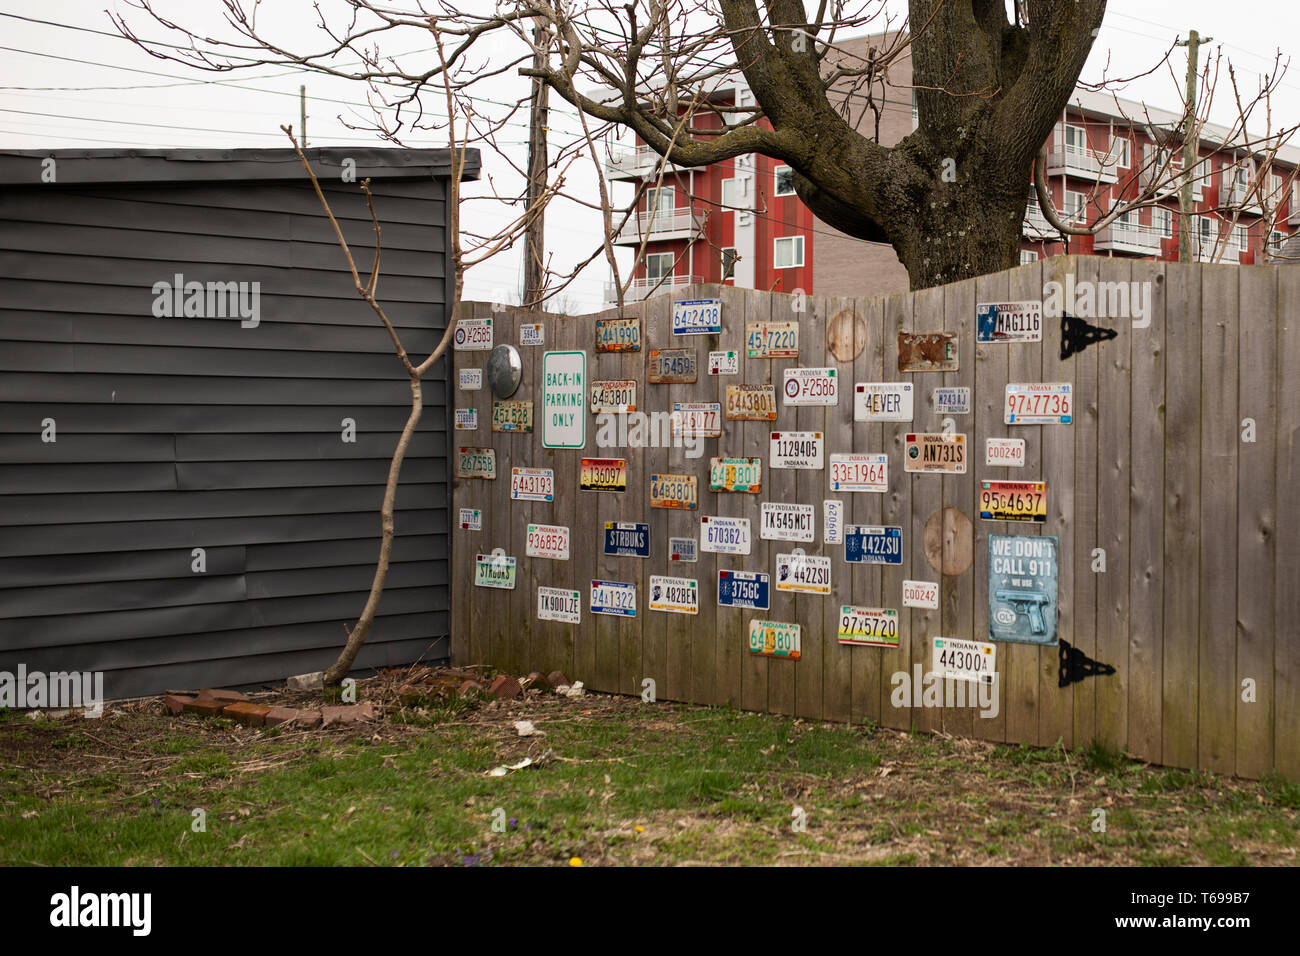 A Collection Of Vintage License Plates Hanging On A Wooden Fence In The Fountain Square Neighborhood Of Indianapolis Indiana Usa Stock Photo Alamy